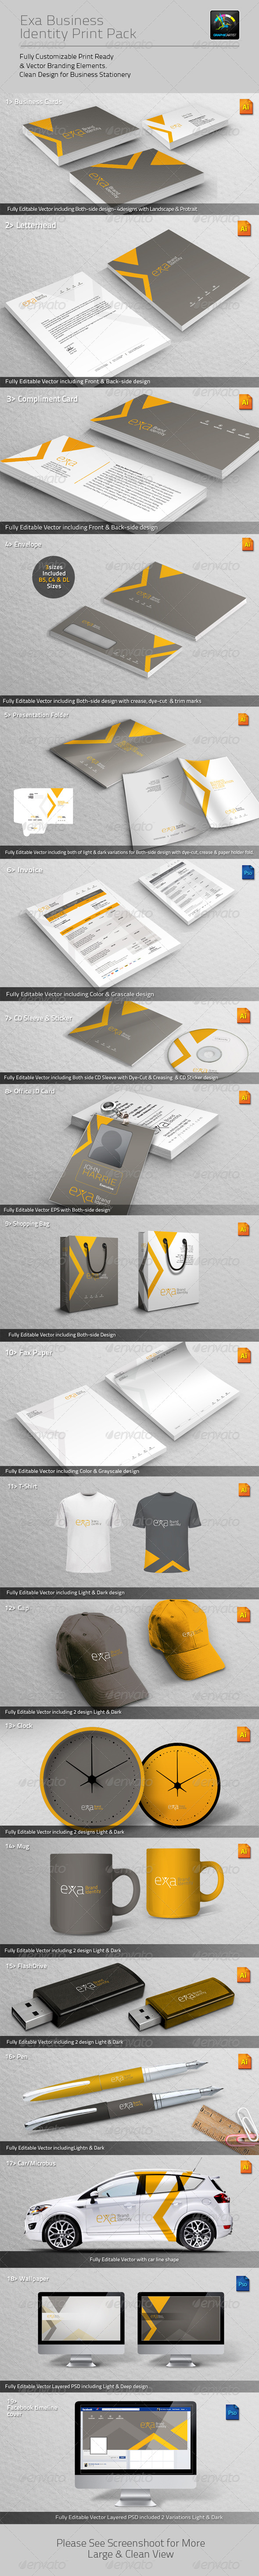 GraphicRiver Exa Business Identity Print Pack 4605124